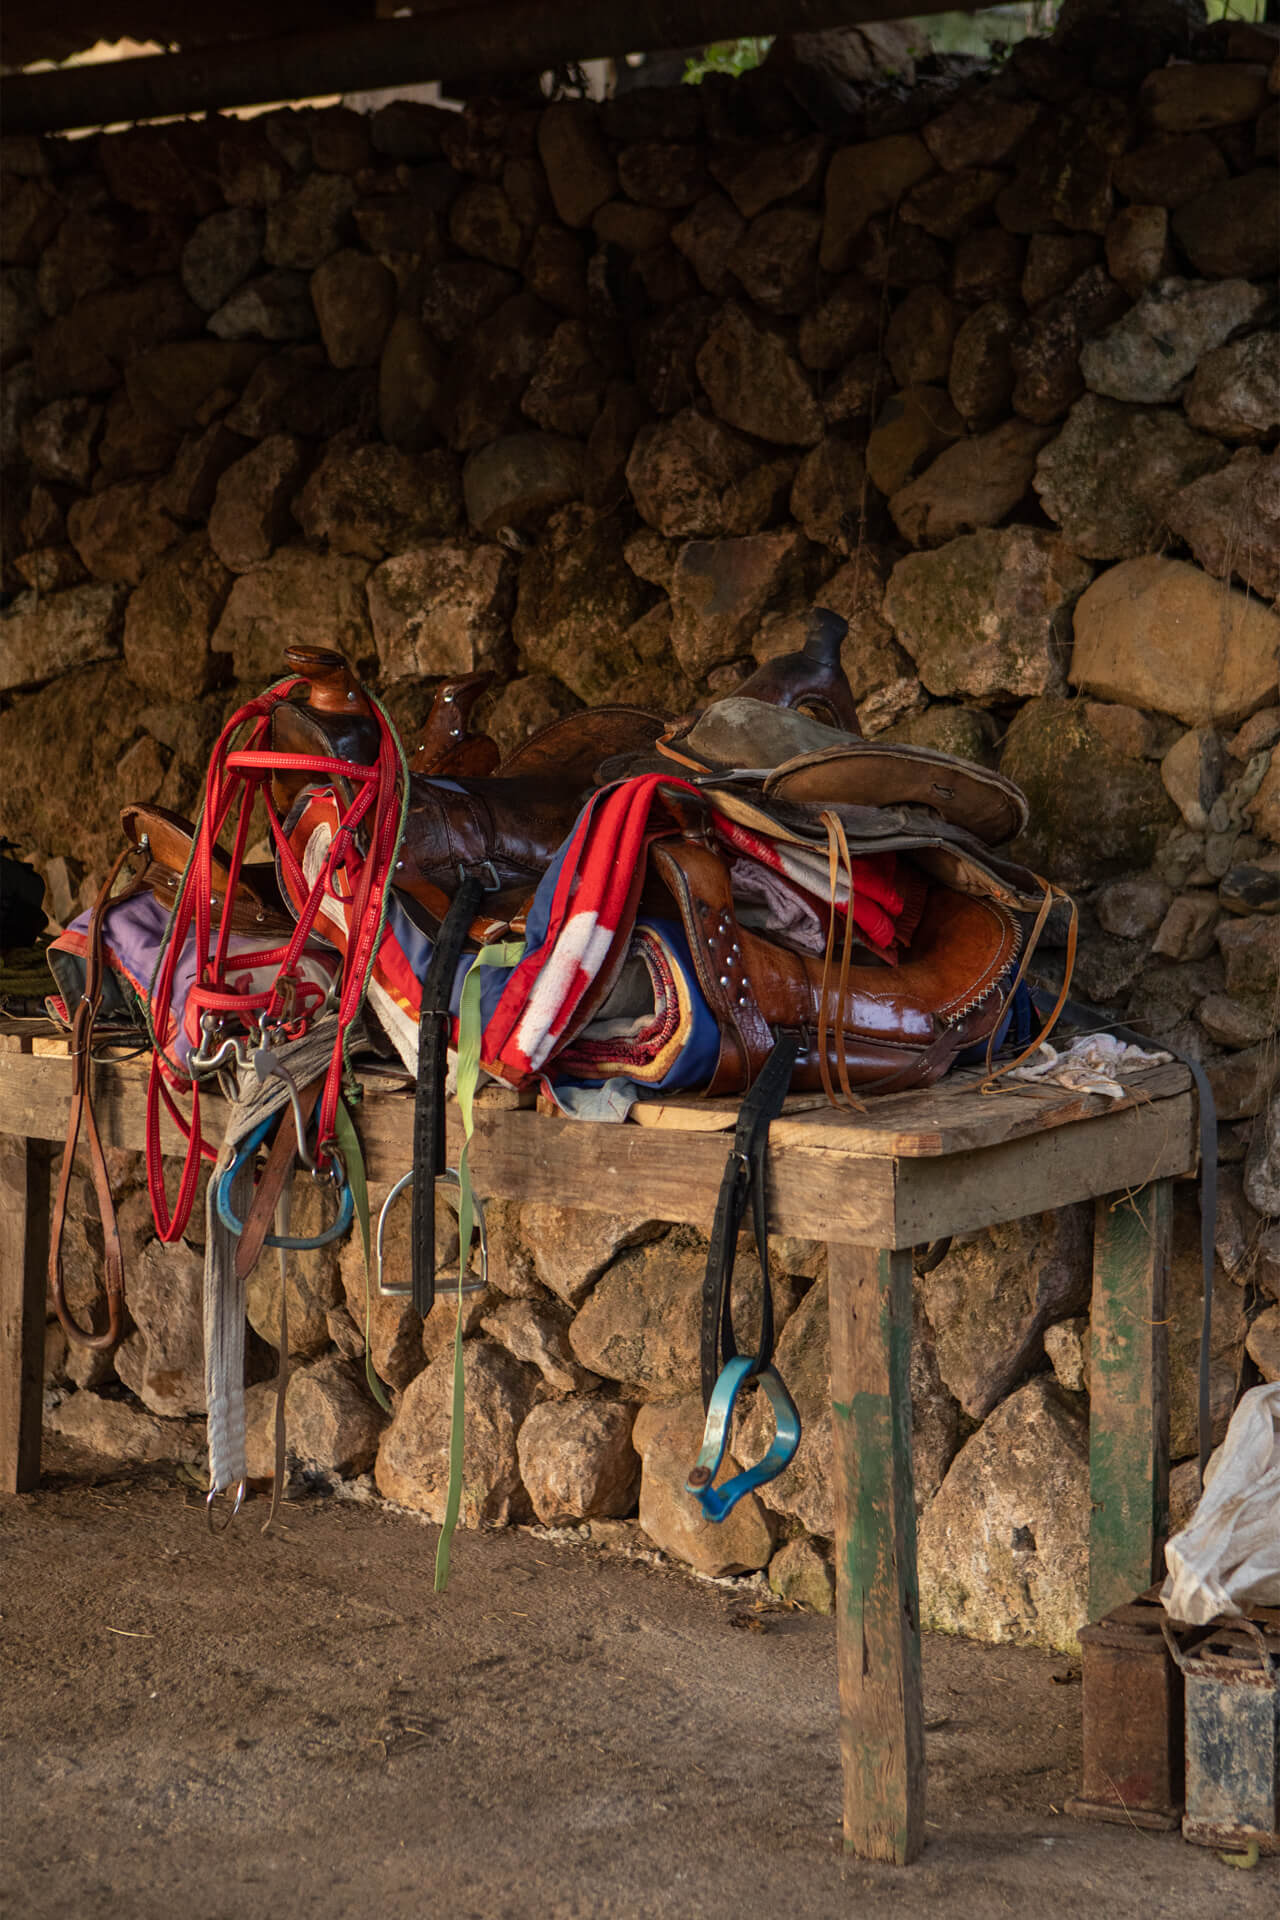 A pile of horseriding saddles ready for use